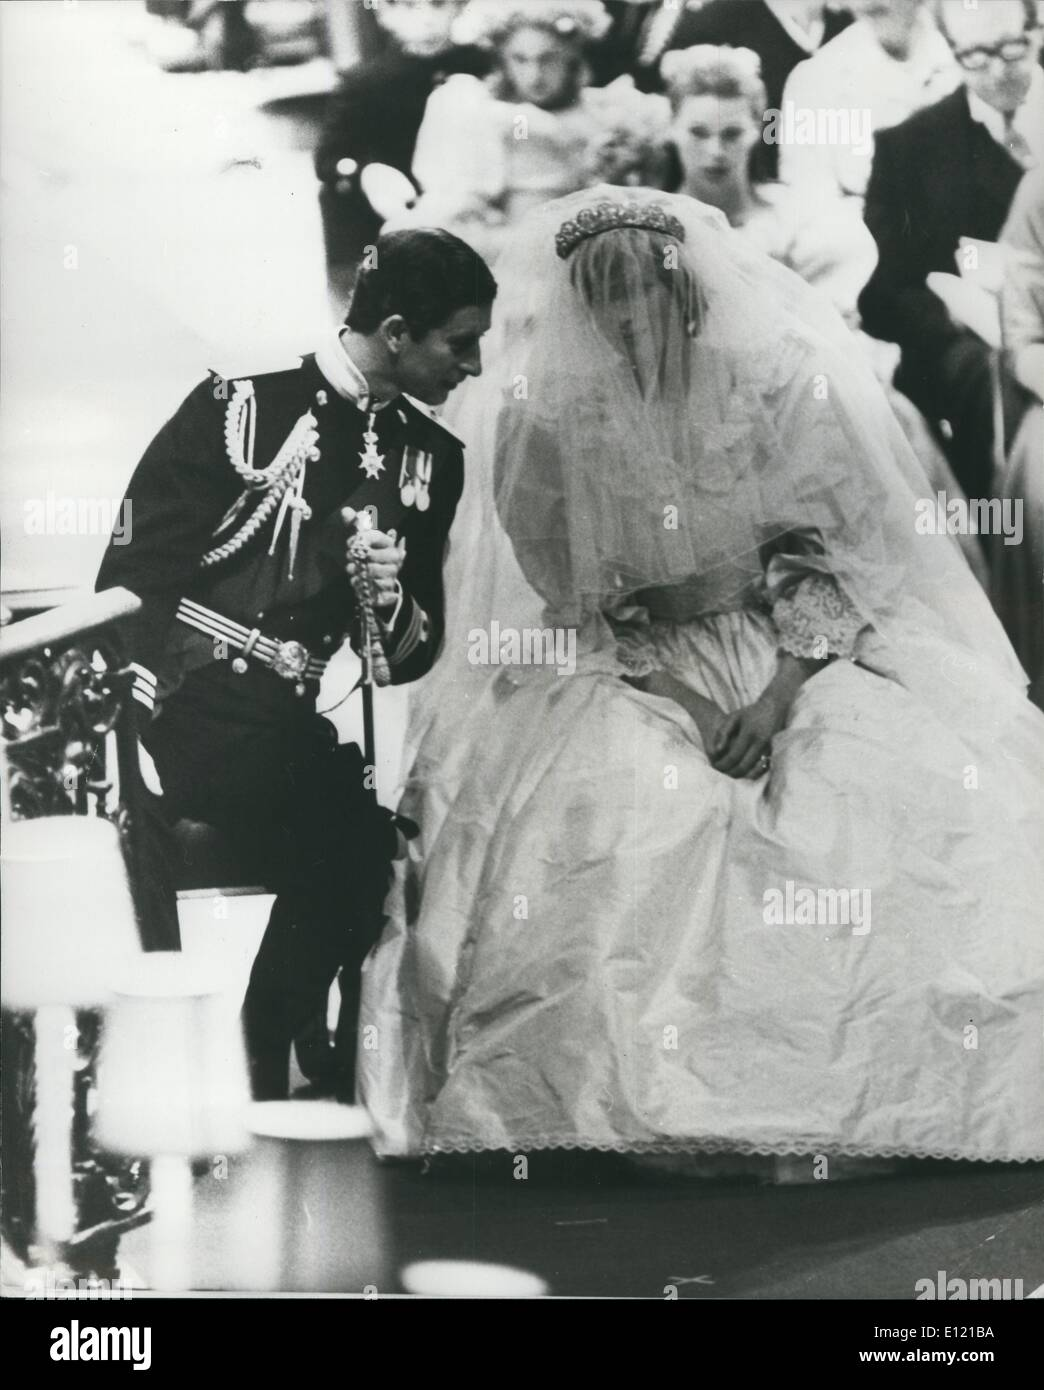 Jul. 07, 1981 - The Royal Wedding: Prince Charles and Lady Diana have a quite chat during the ceremony in St Paul's Cathedral today. Stock Photo